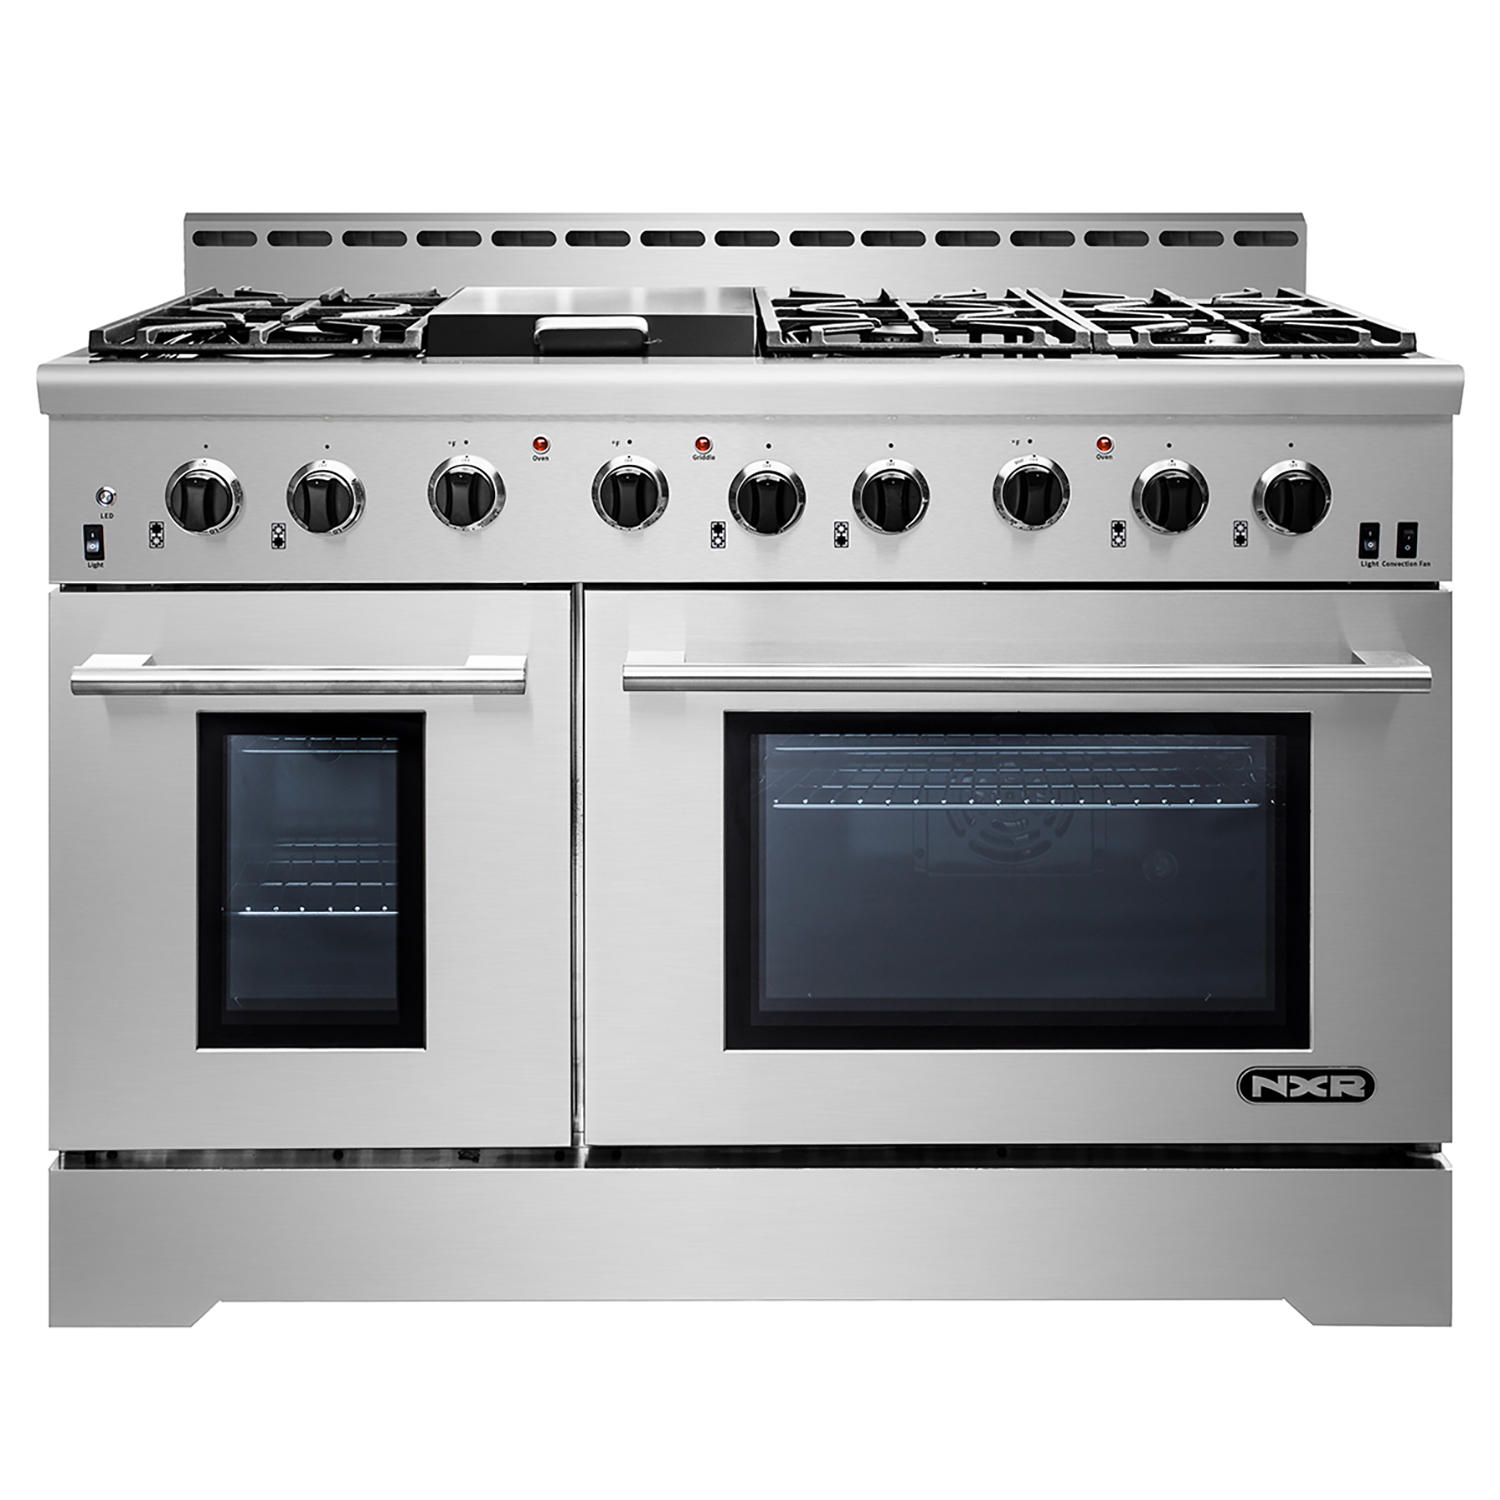 NXR MM4811 Stainless Steel 48 Inch Gas Range with LED